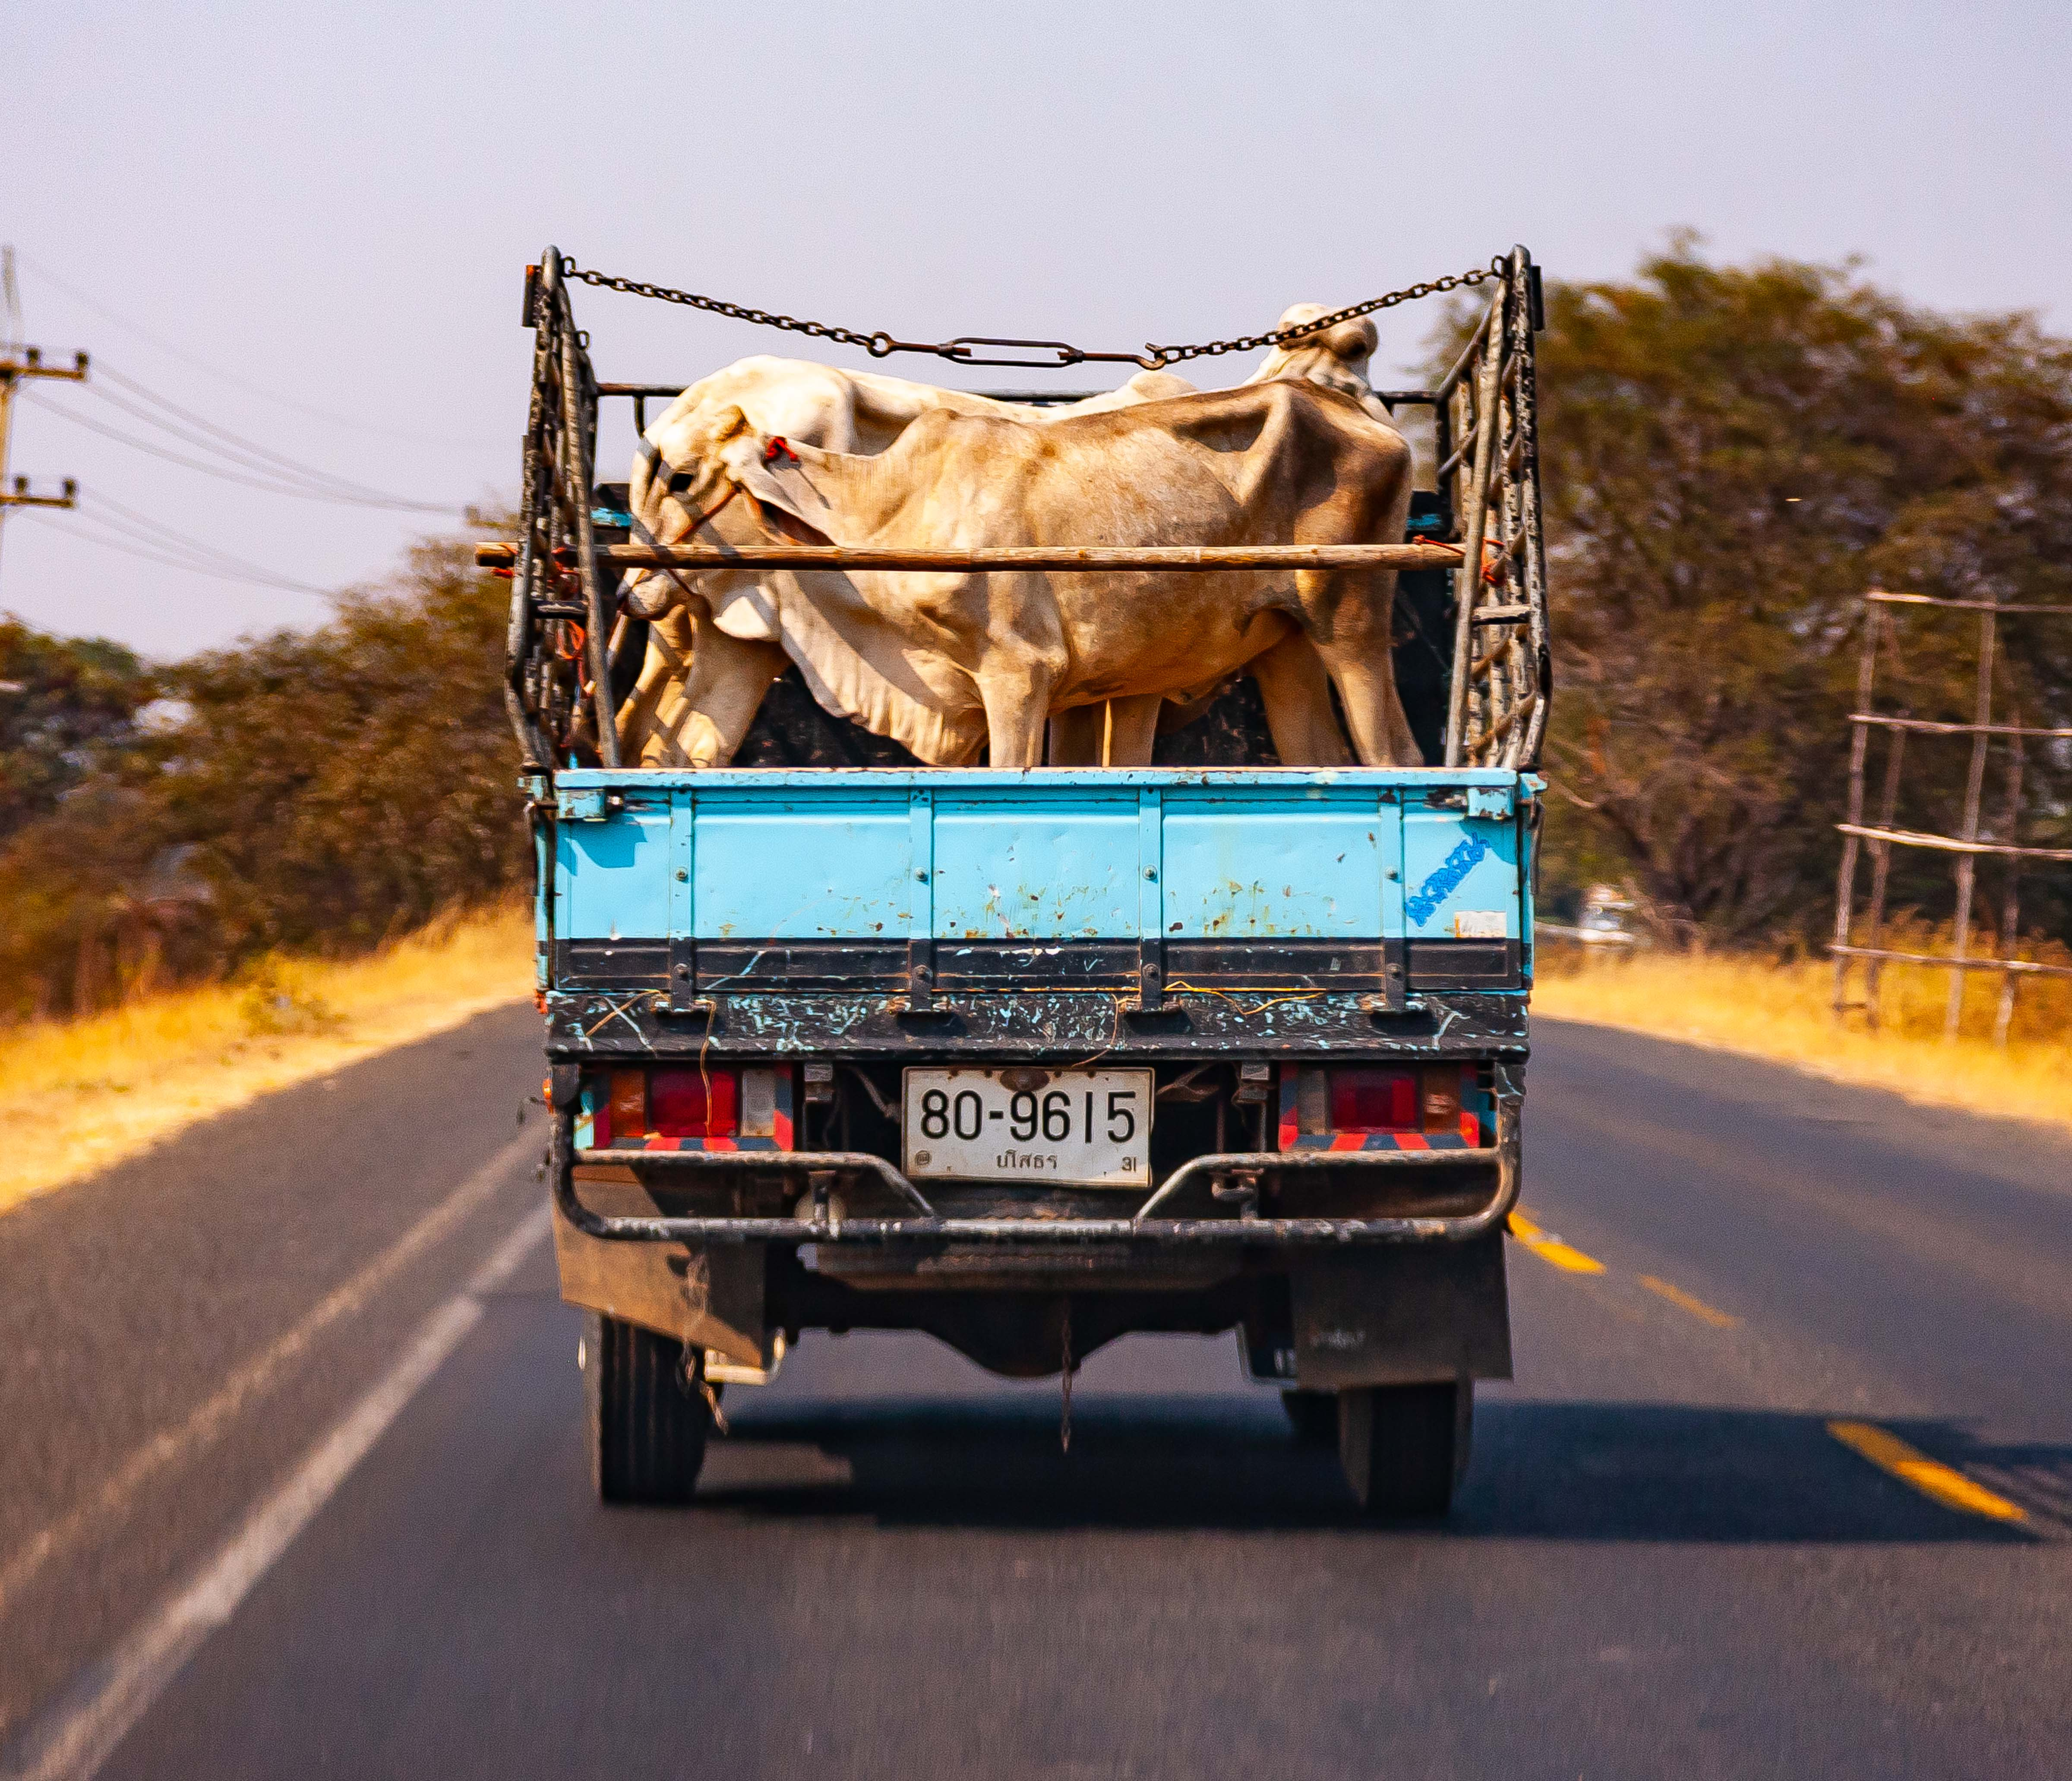 Thailand, Yasothon Prov, Cow In Truck, 2008, IMG 0582